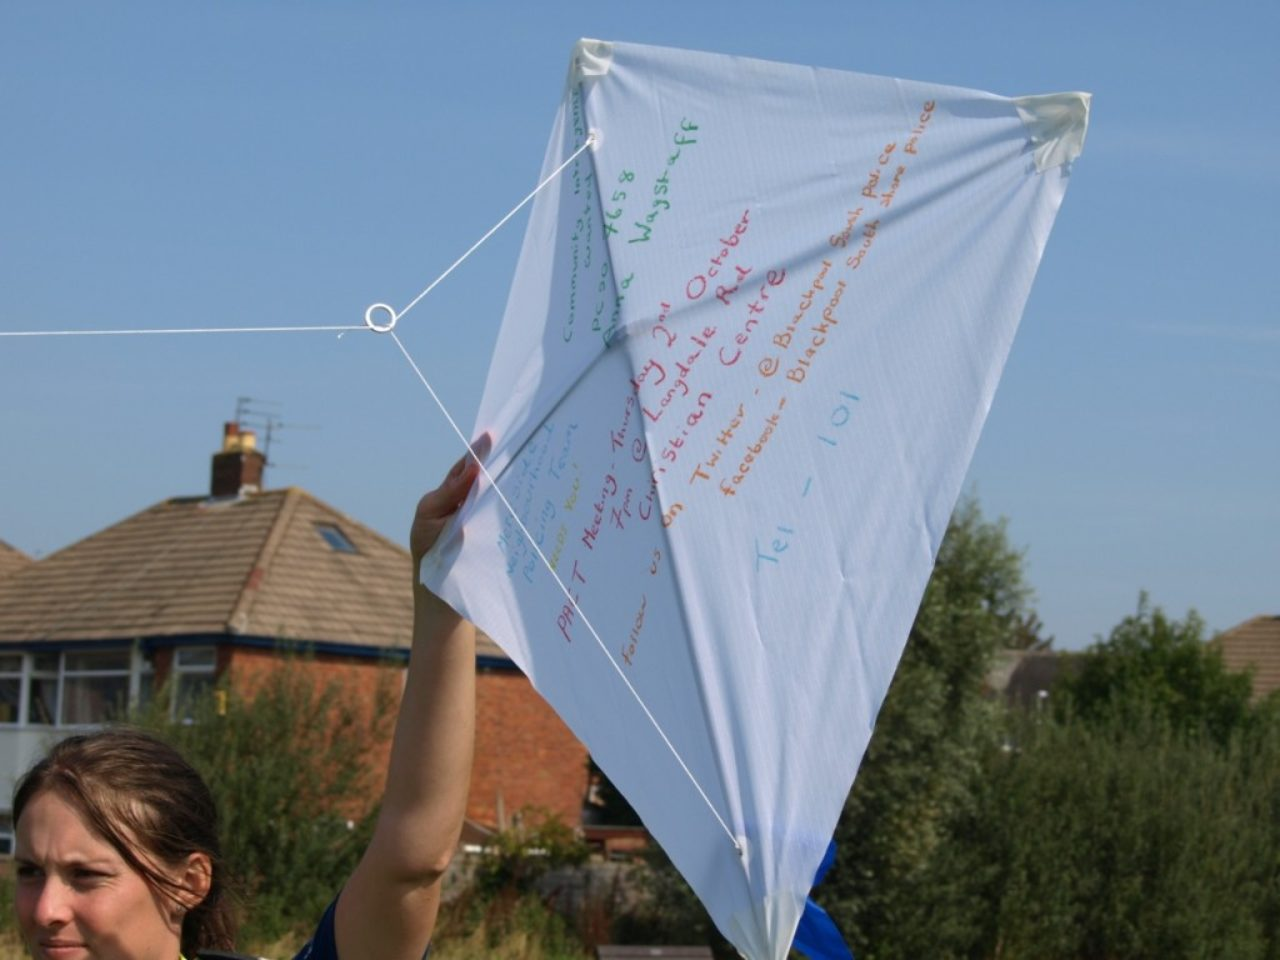 Kite decorated by Police Community Support officer